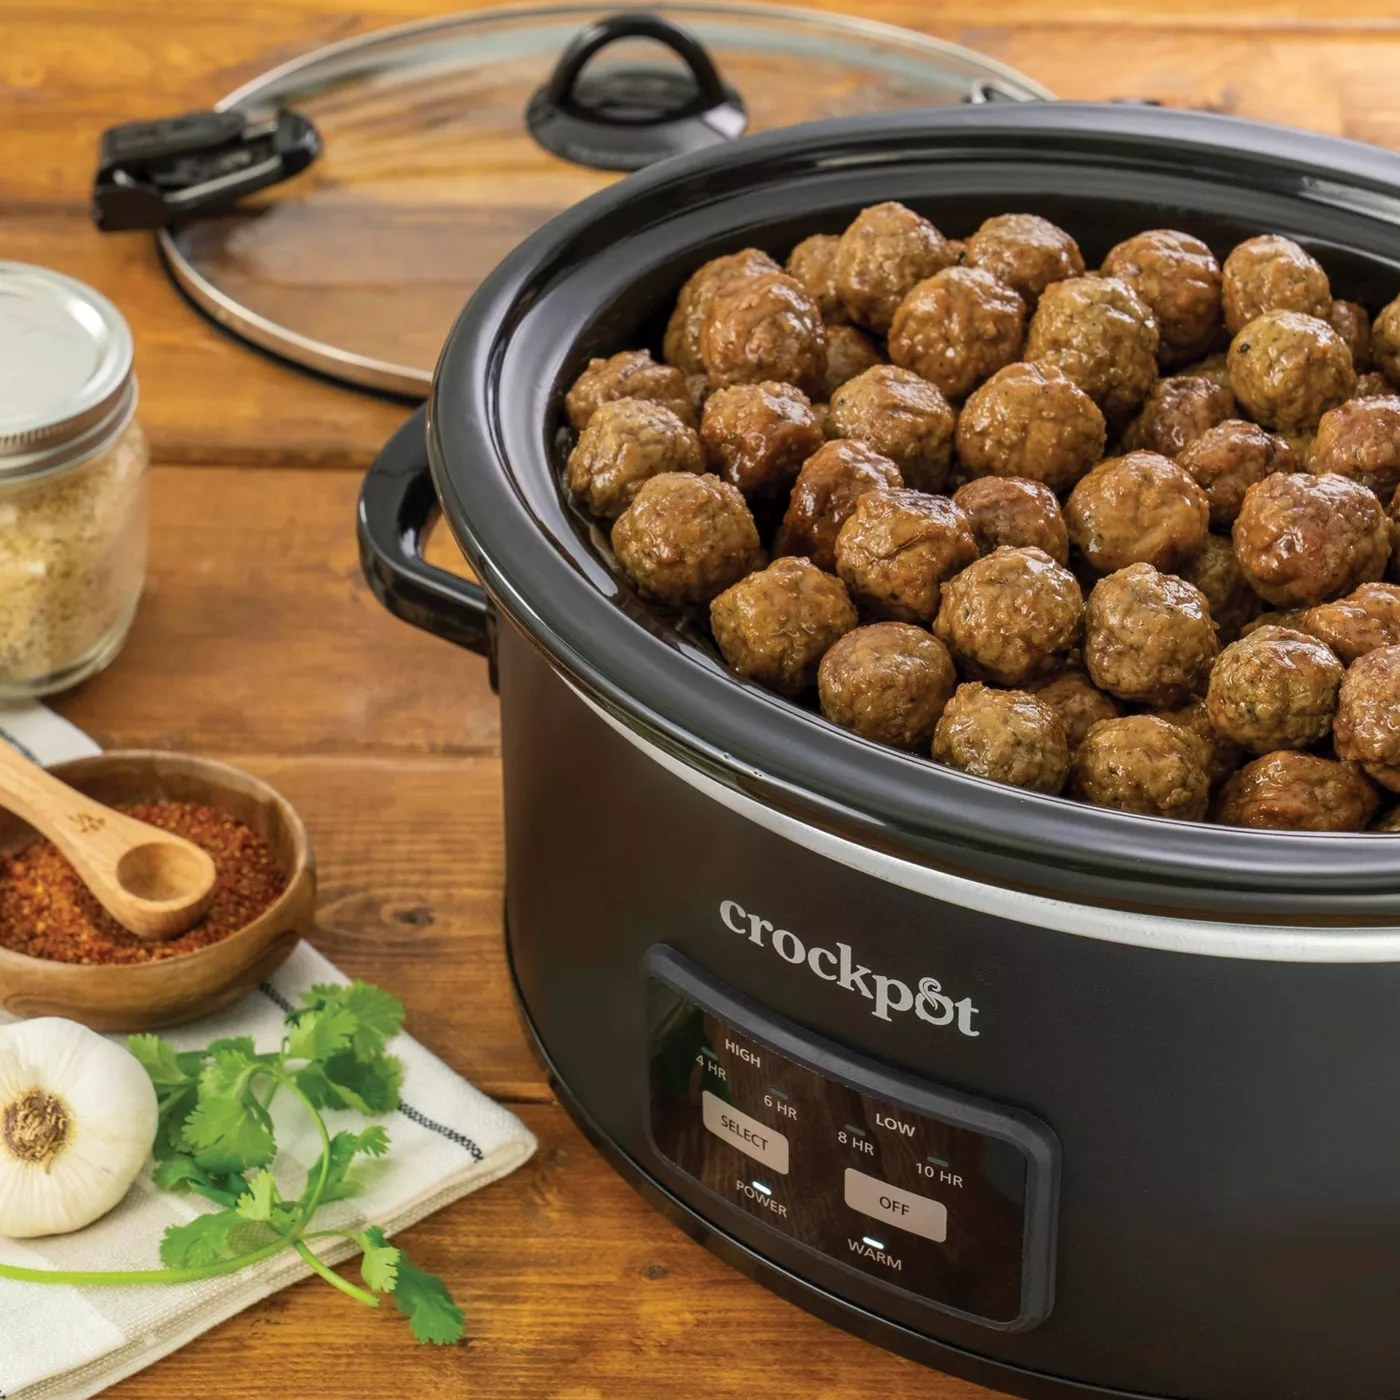 The crock pot filled with meatballs